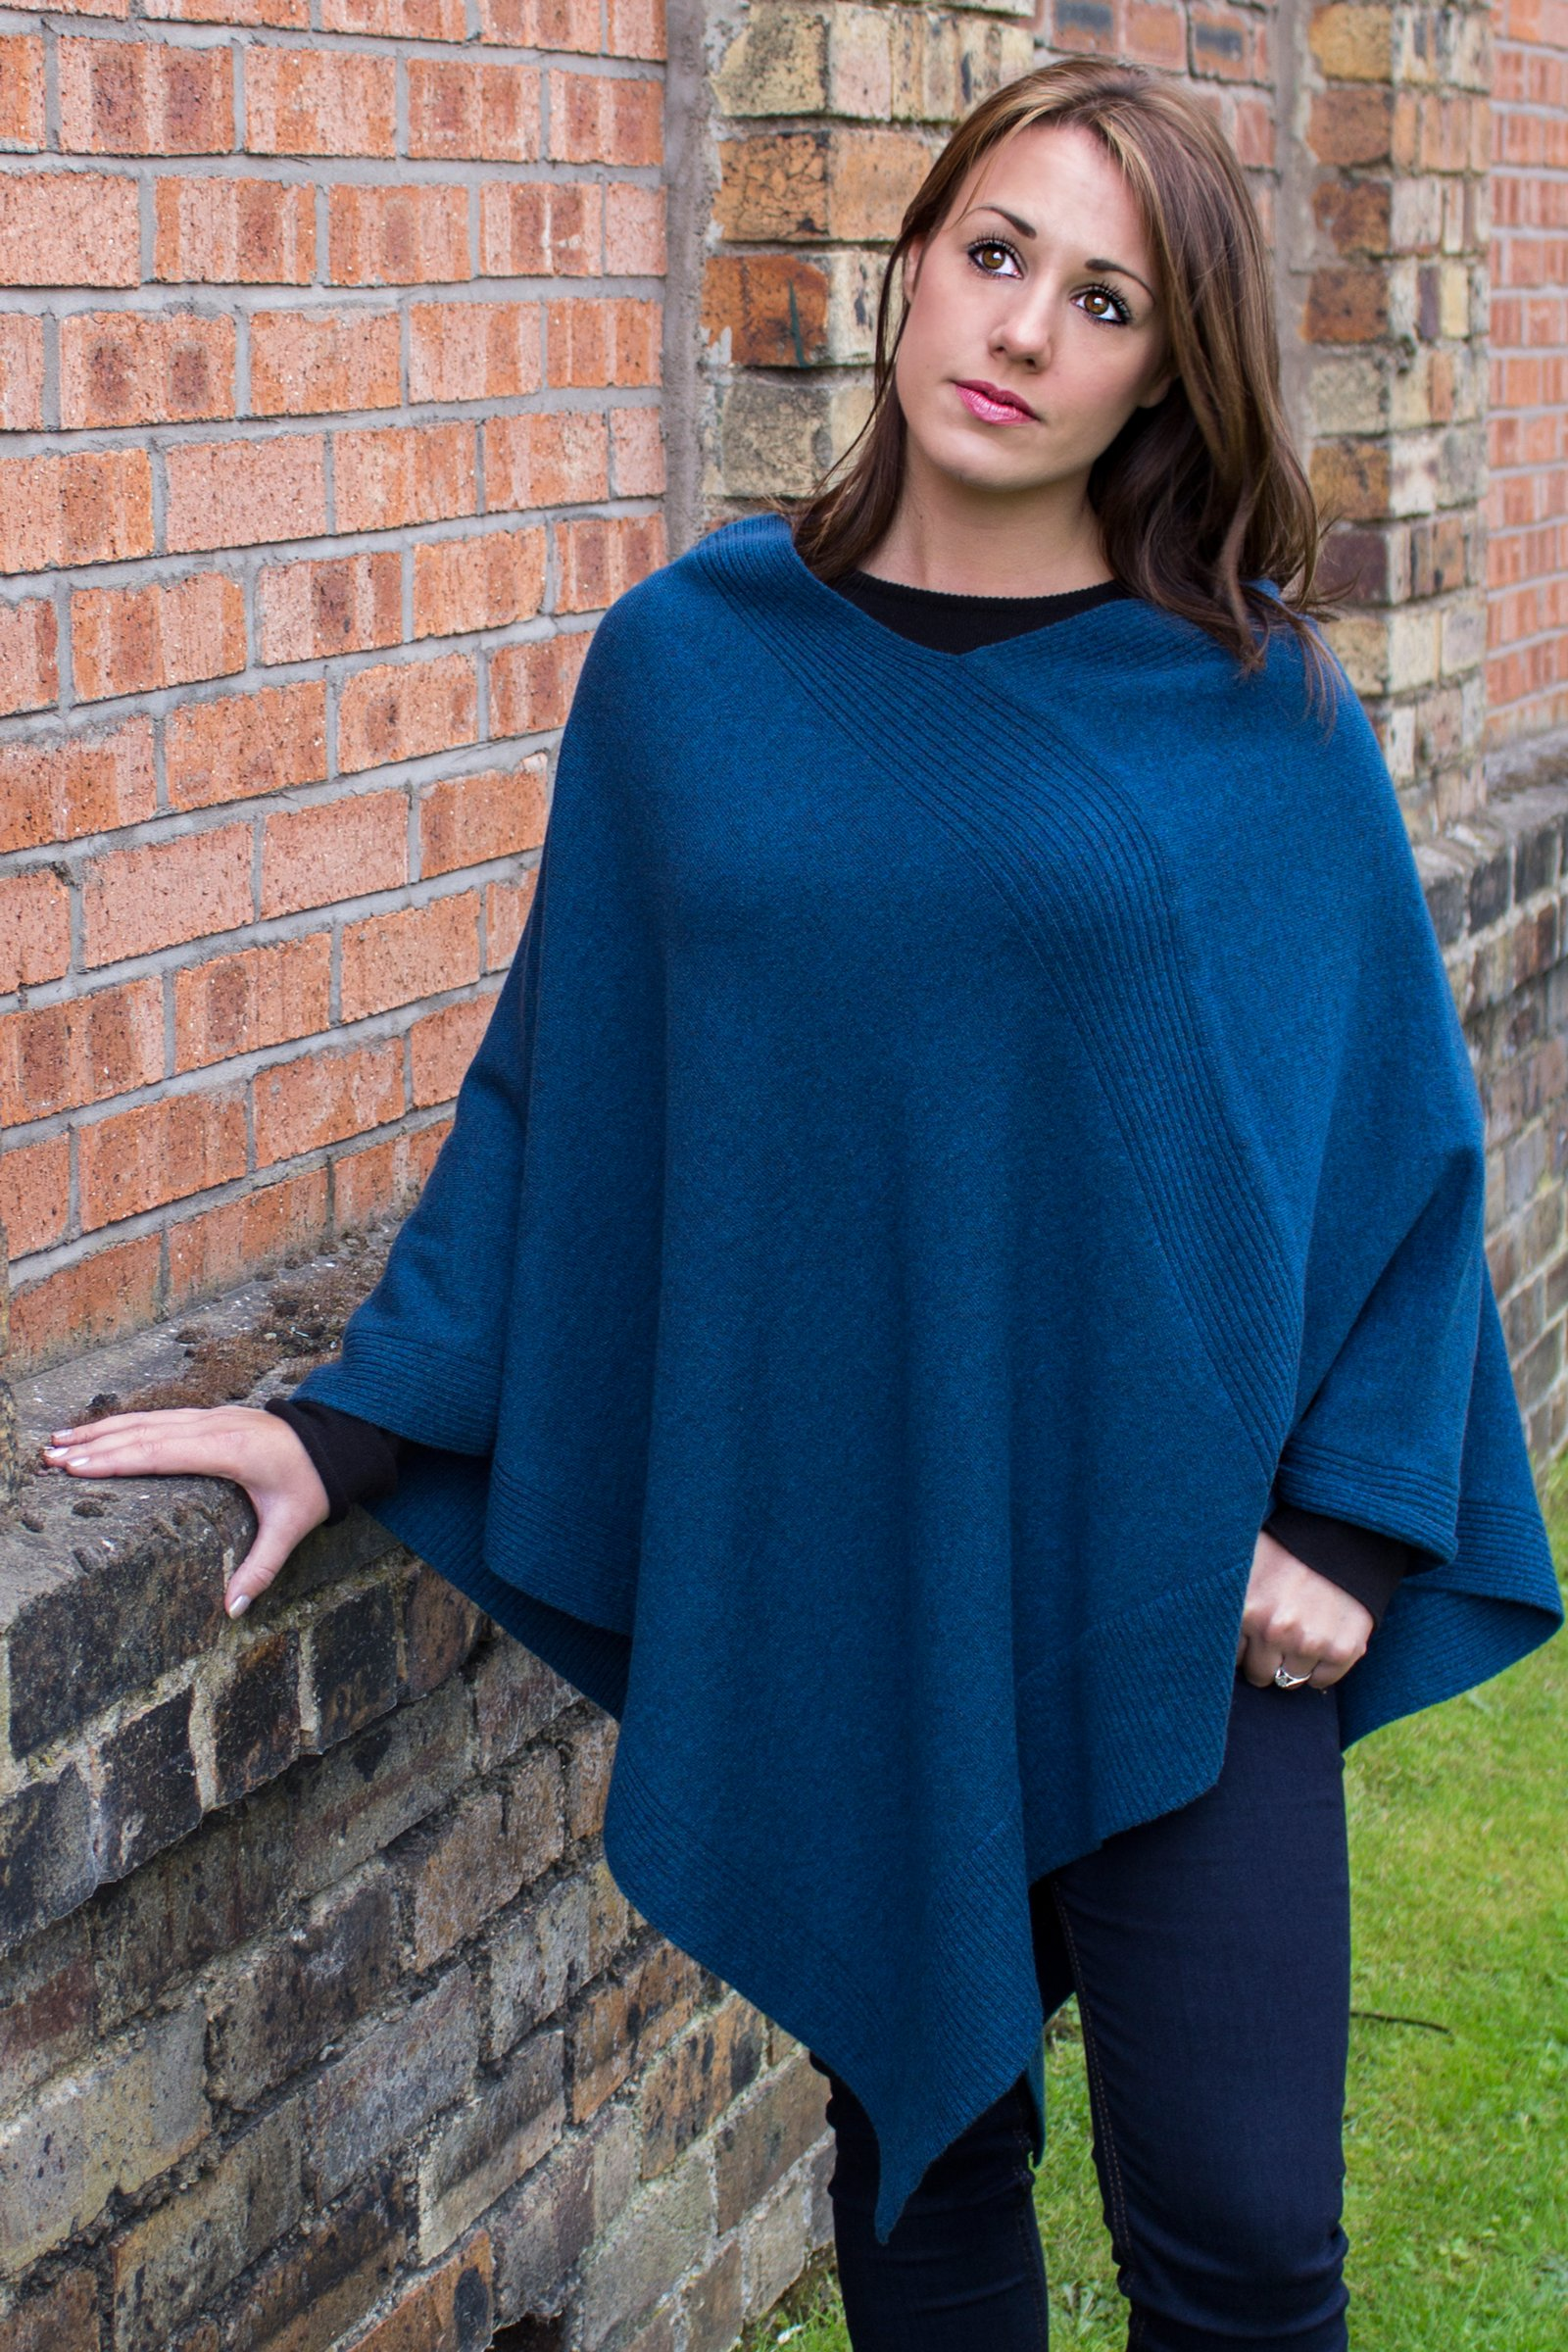 Love Cashmere Women's 100% Cashmere Poncho - Black - Made In Scotland RRP $600 by Love Cashmere (Image #2)